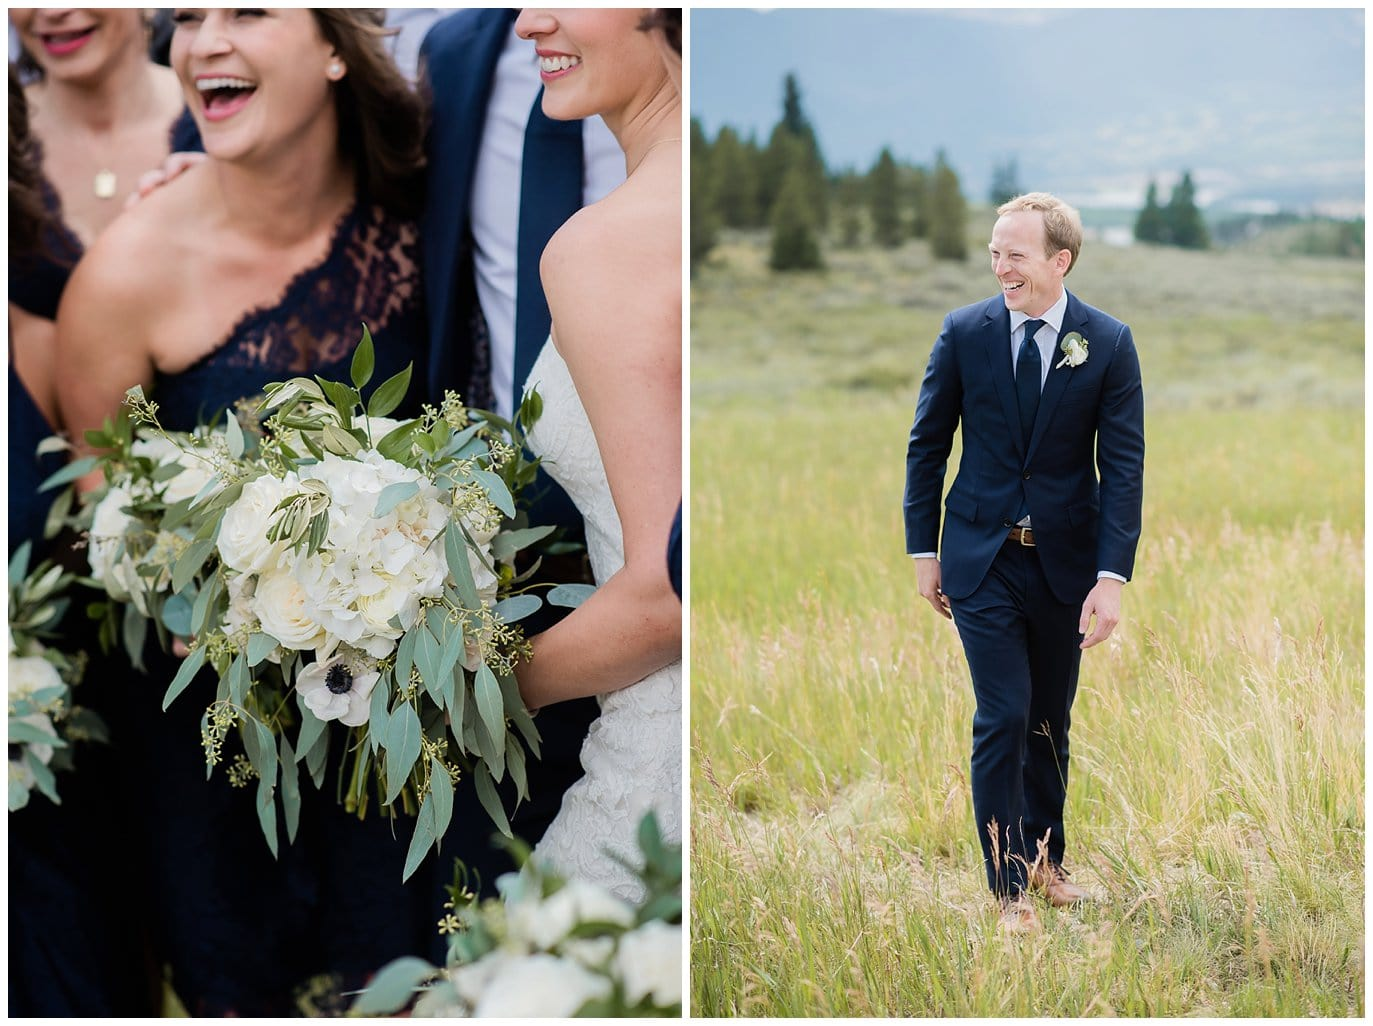 laughing groom in navy suit at Arapahoe Basin Black Mountain Lodge Wedding by Denver Wedding Photographer Jennie Crate